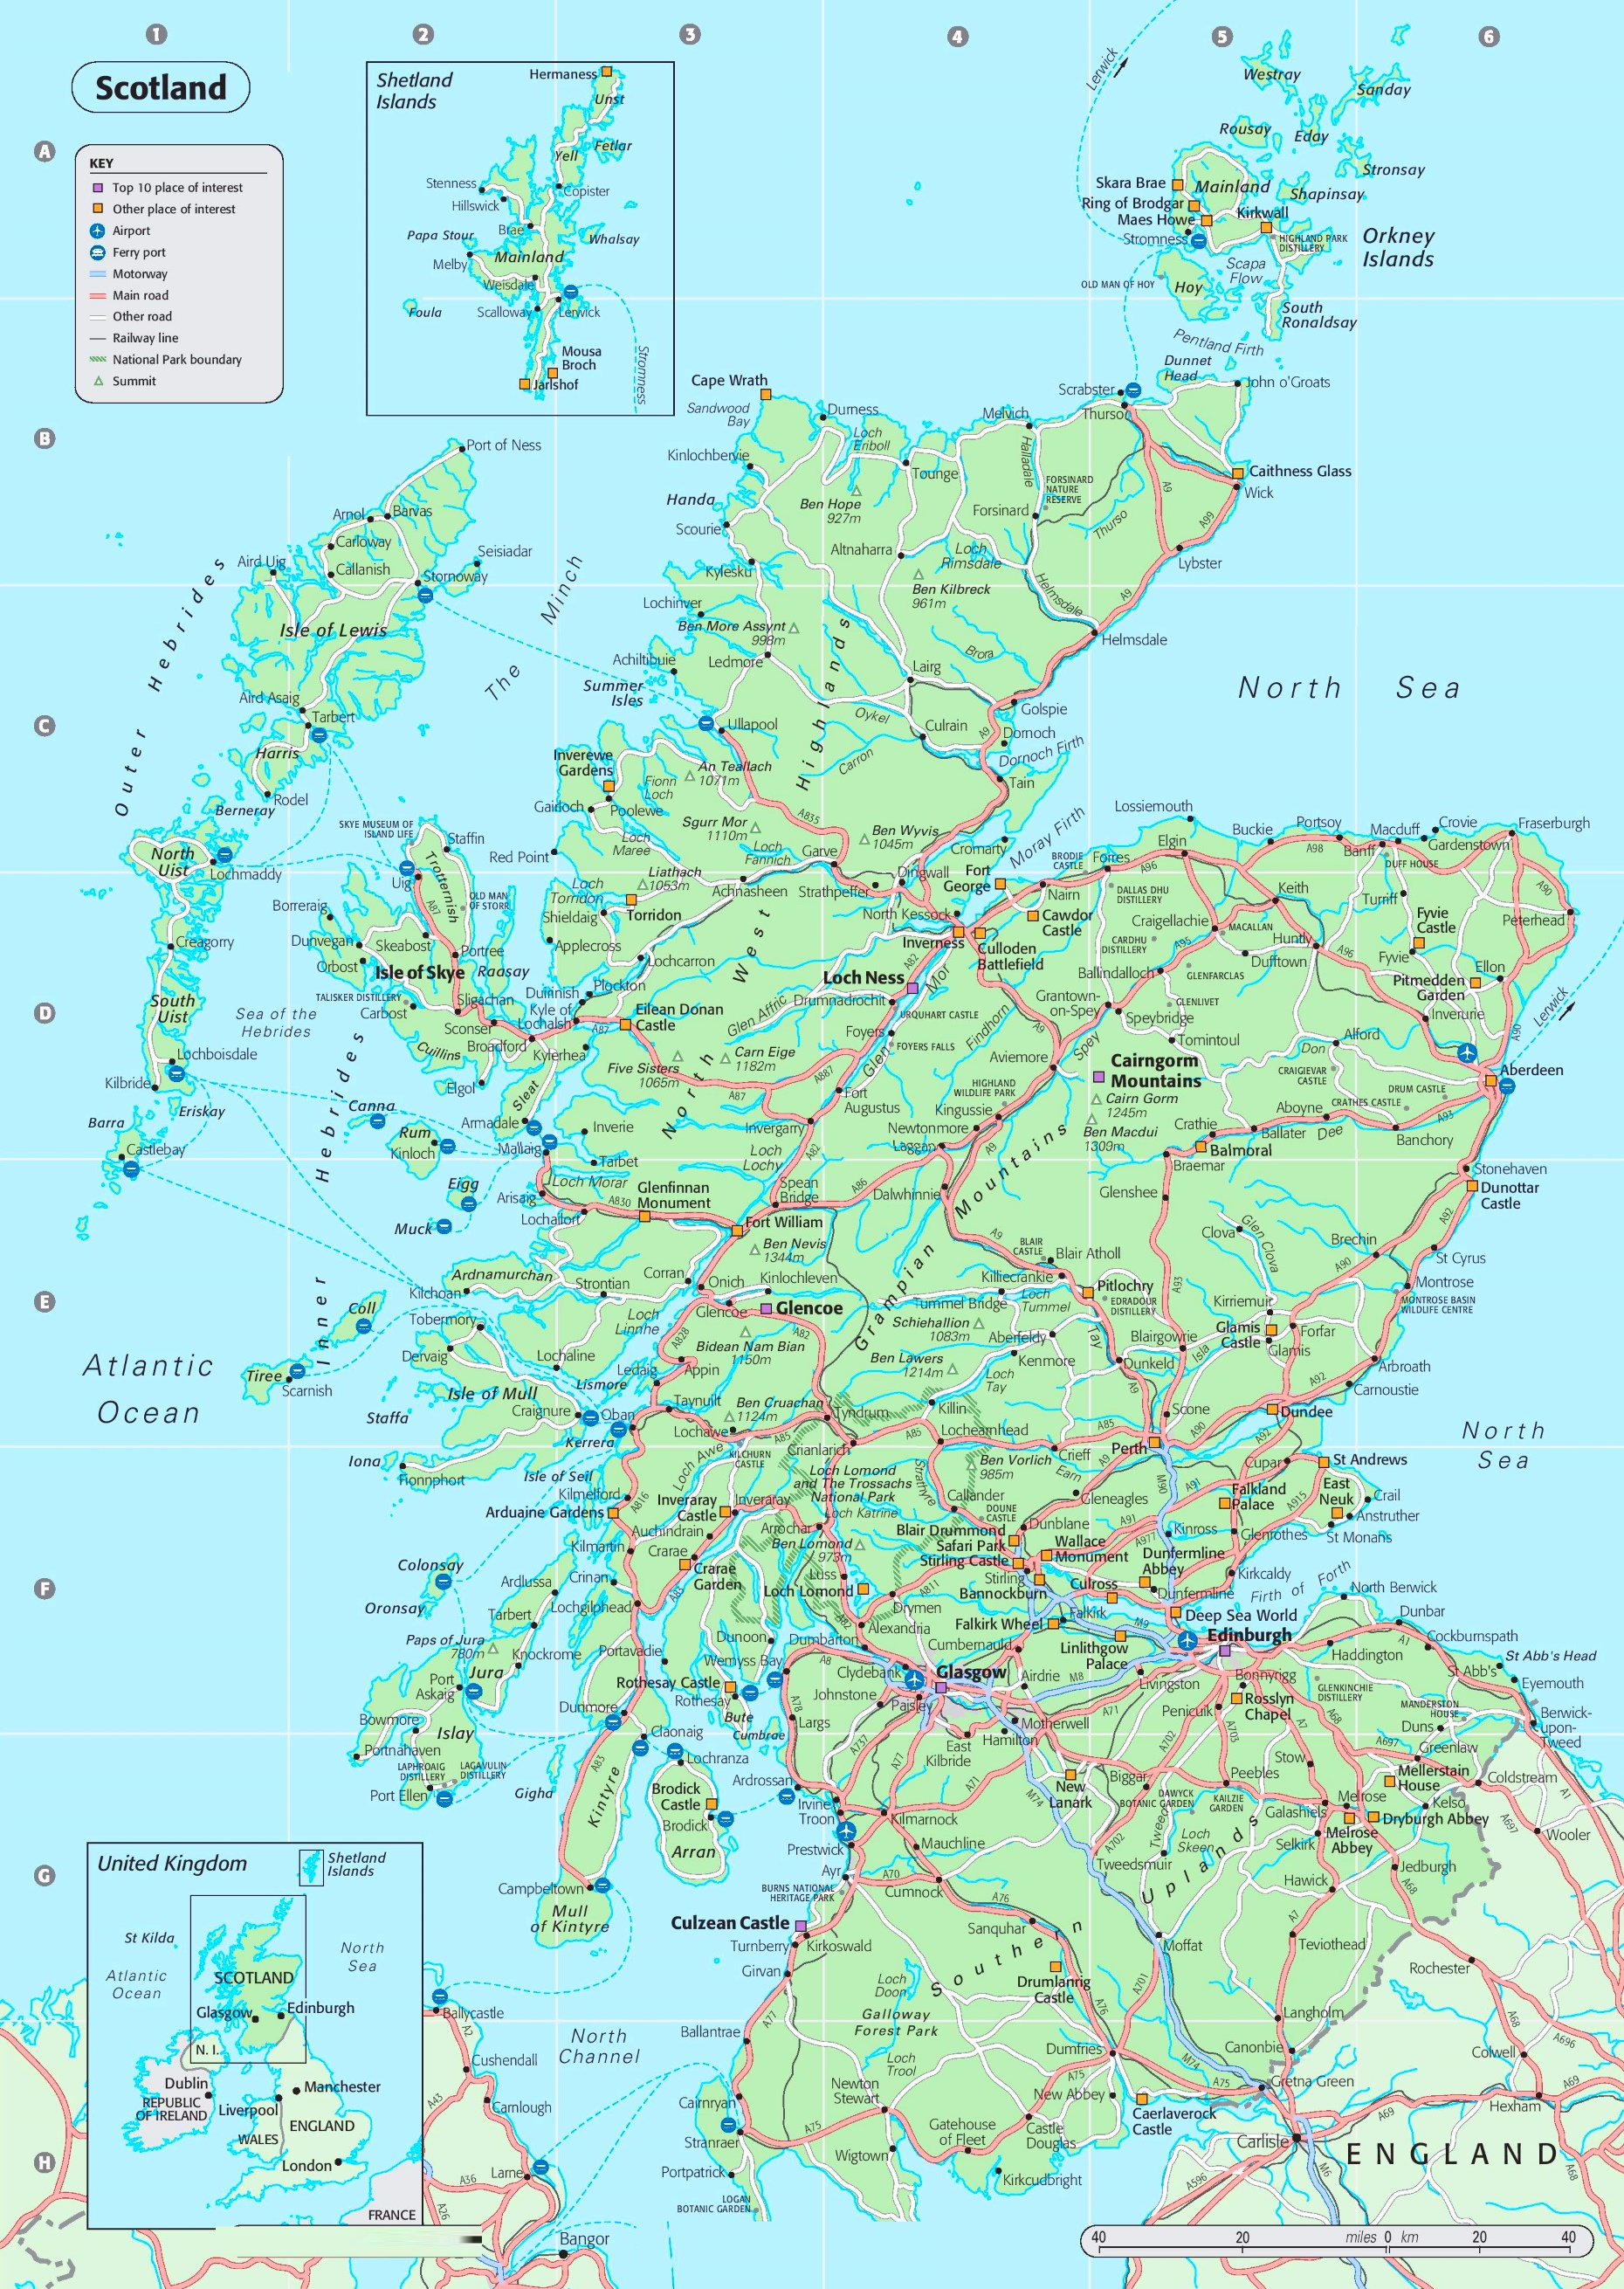 Map Of North England And Scotland.Detailed Map Of Scotland